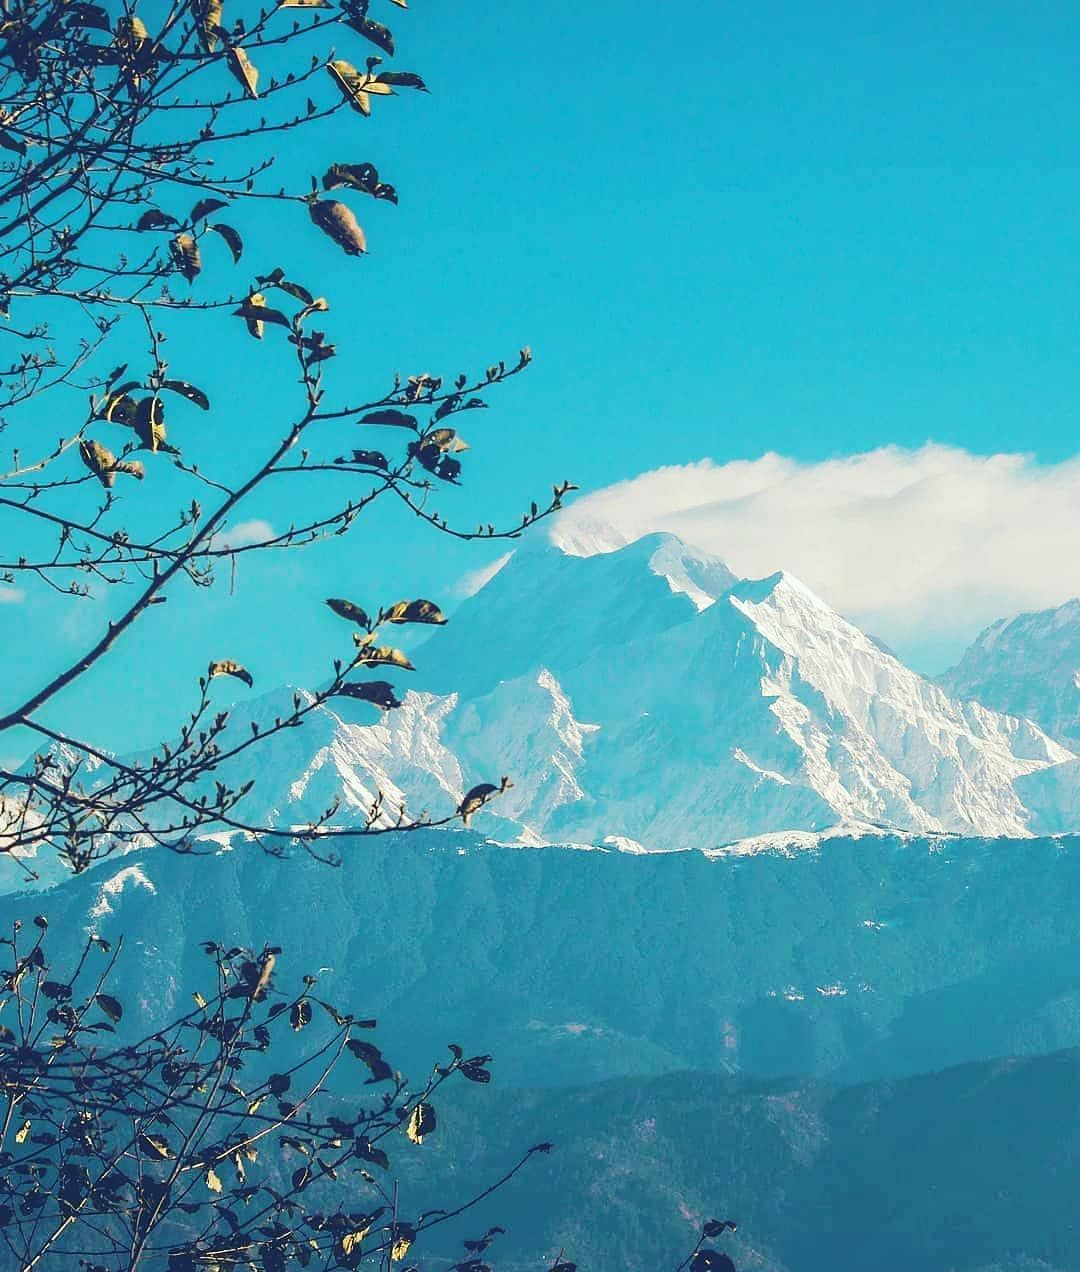 10 BEST Places to Visit in Kausani, Uttarakhand